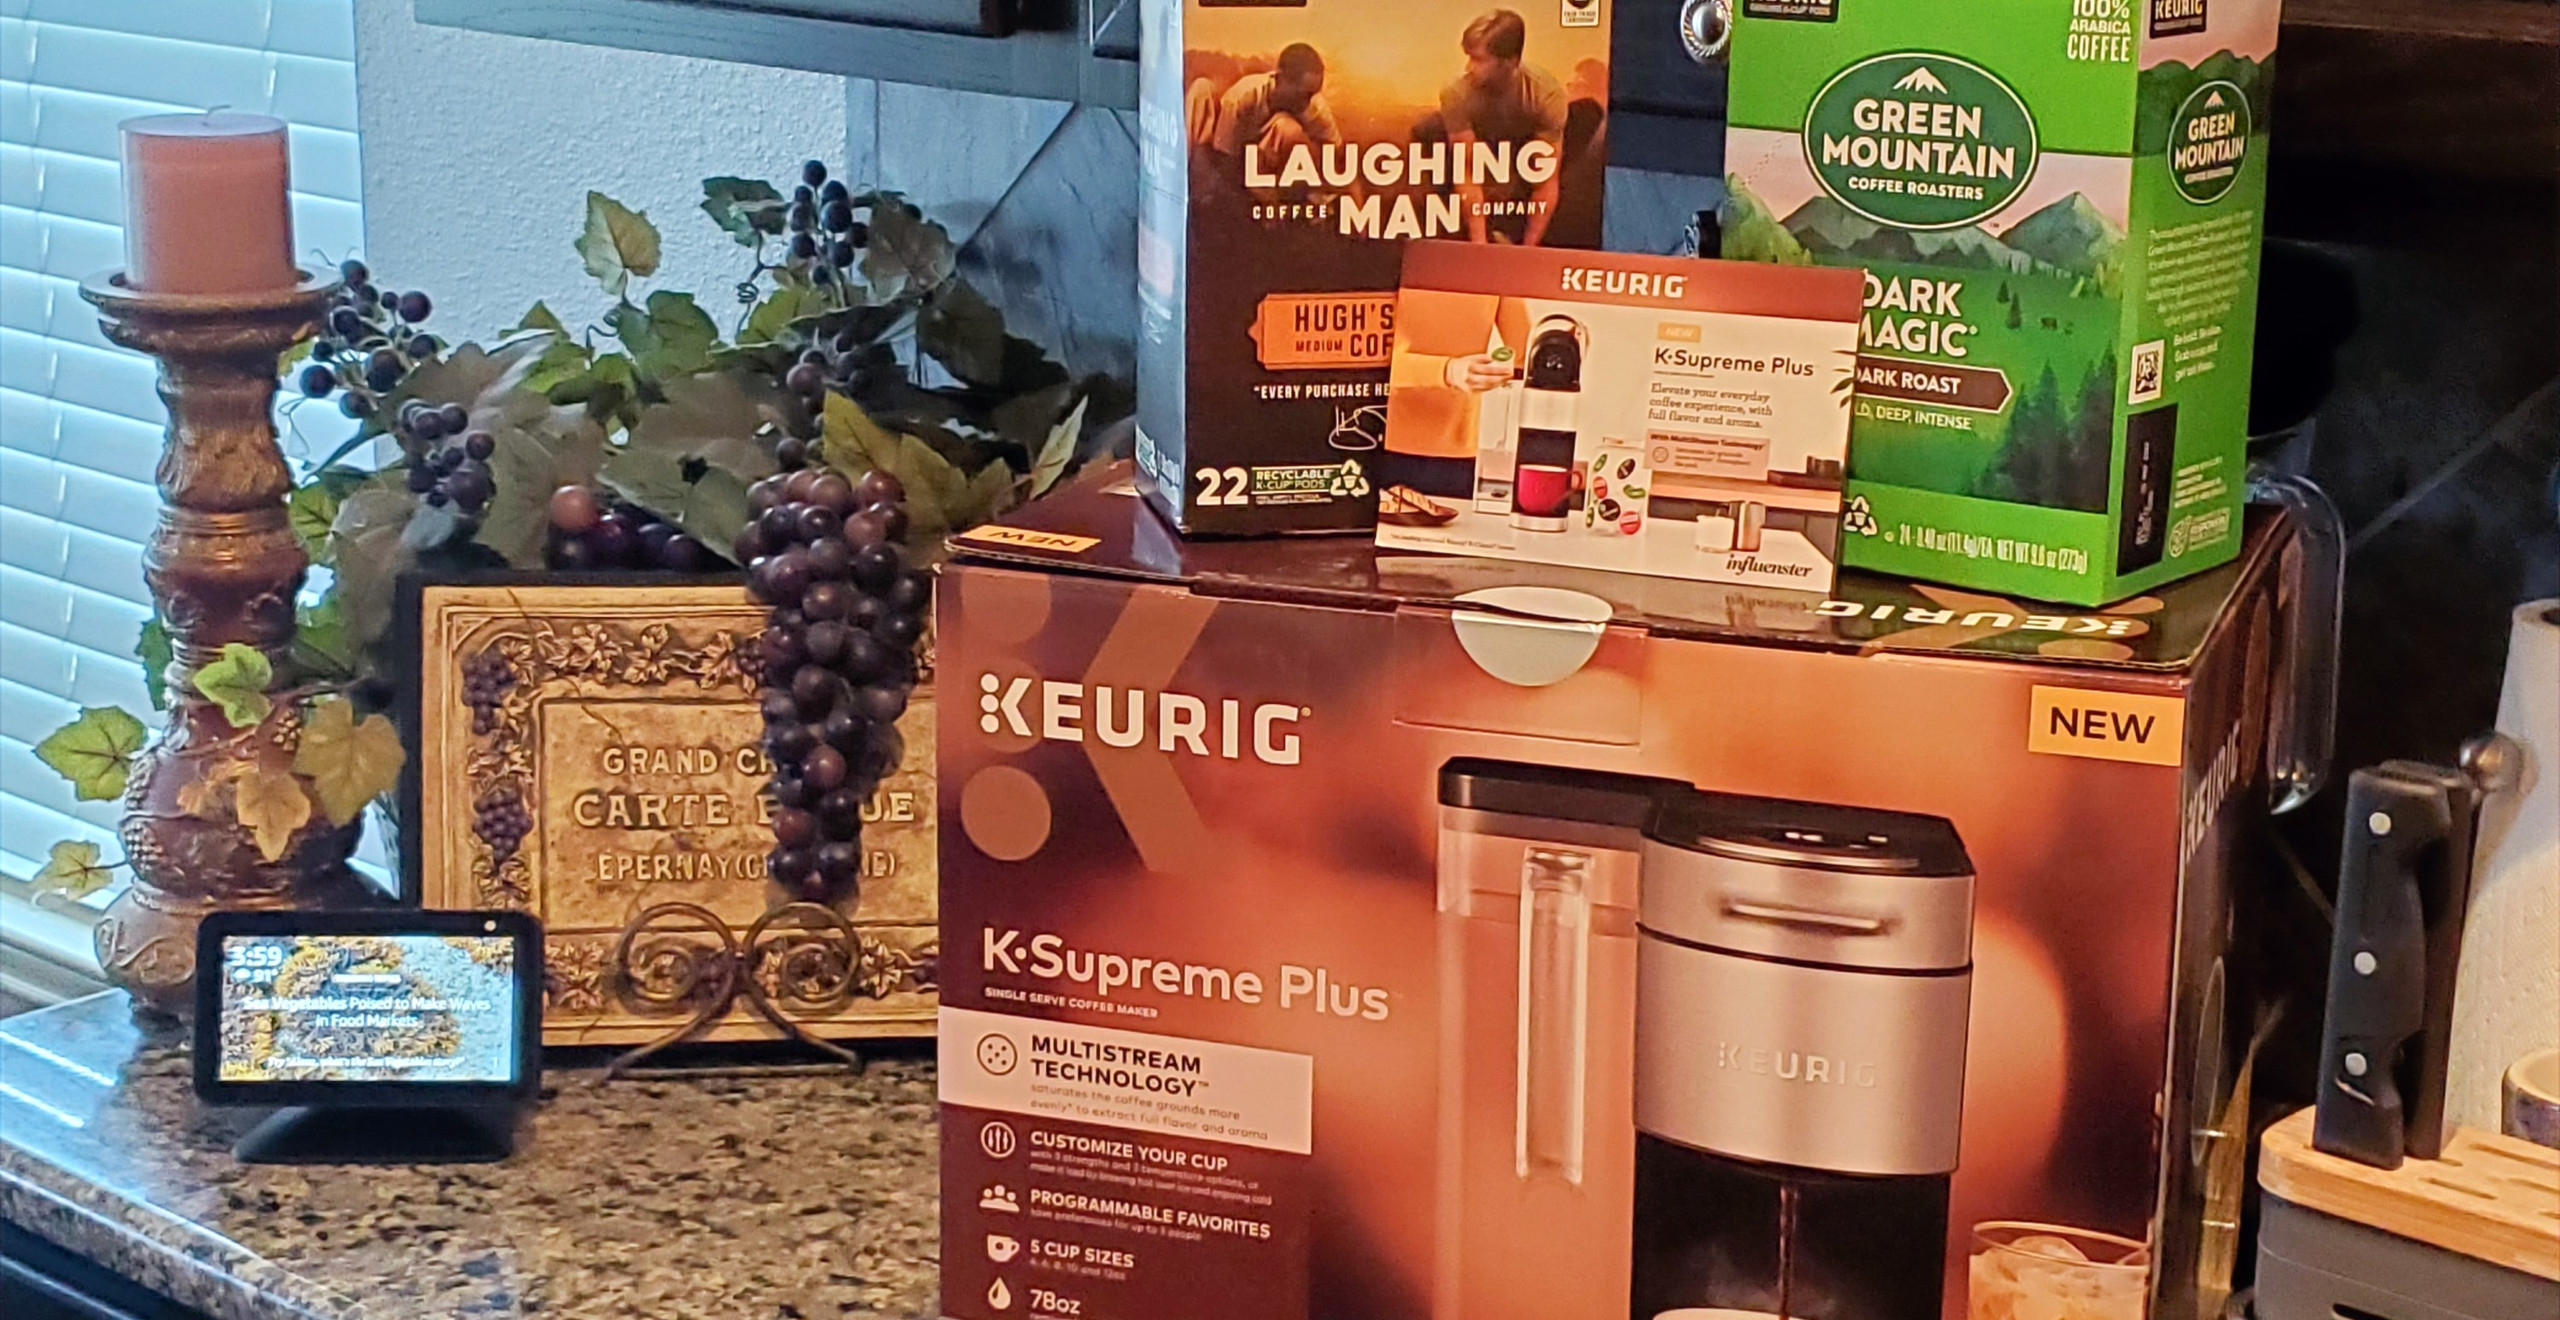 Keurig K-Supreme Plus Coffee Maker